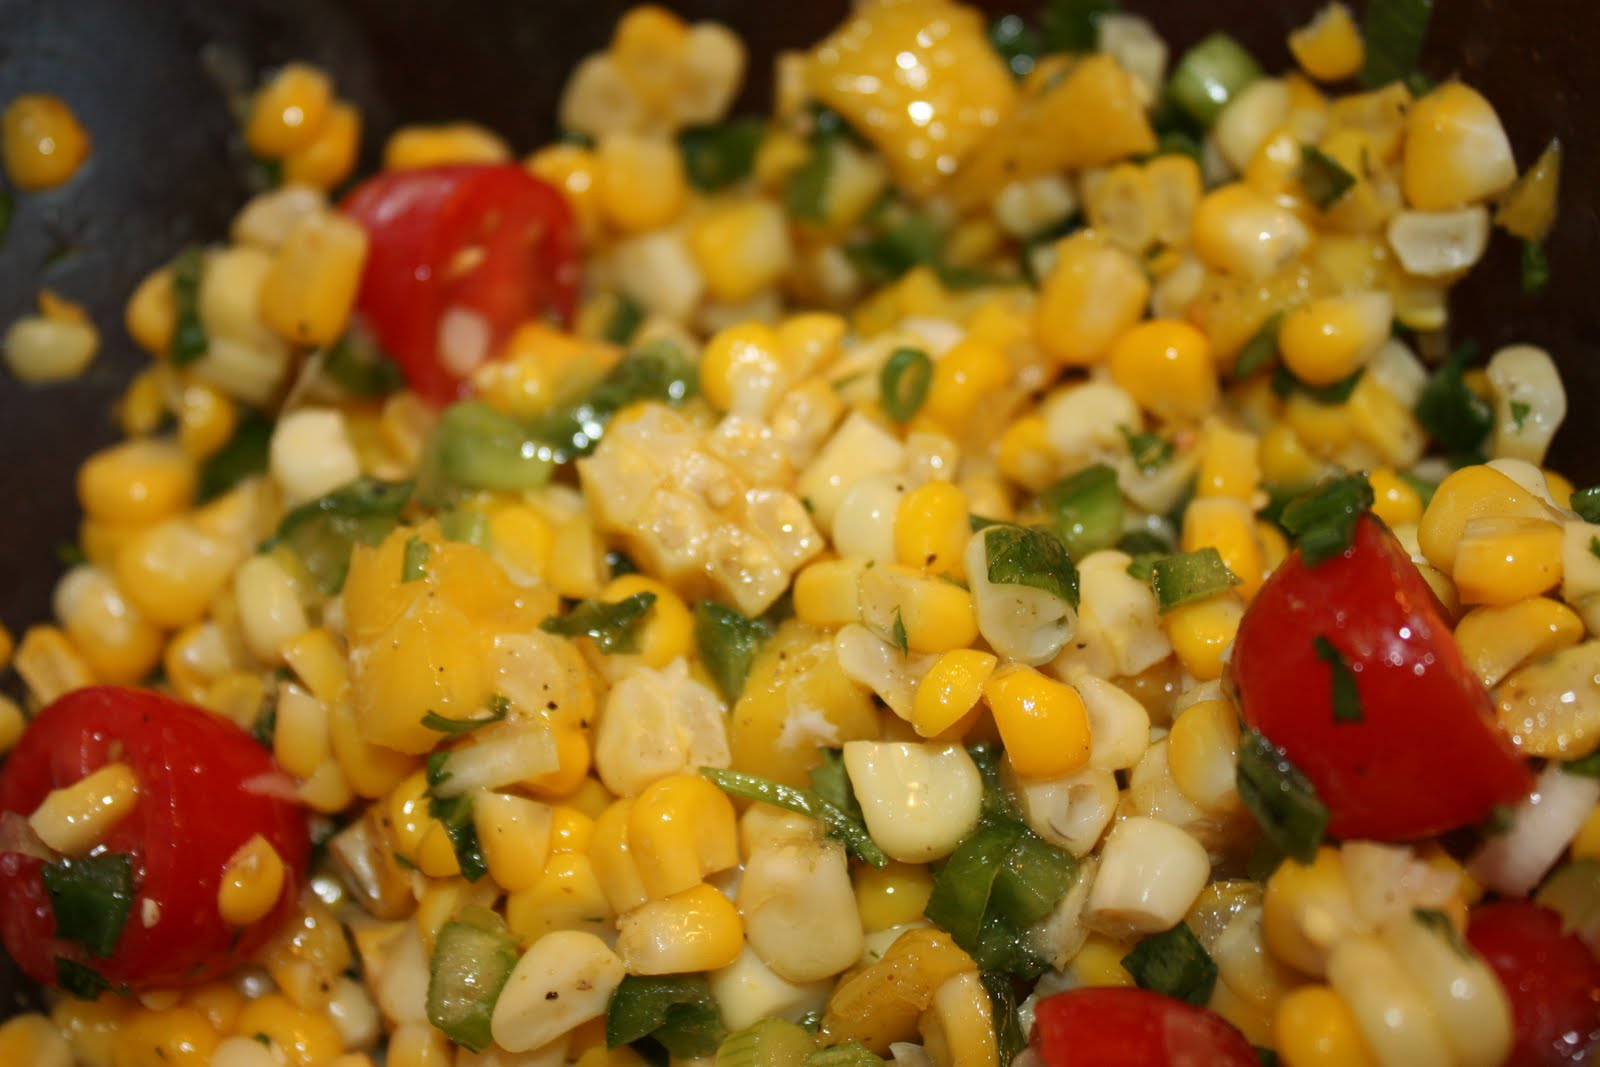 Sweet corn salad recipe dishmaps for Sides for fish tacos